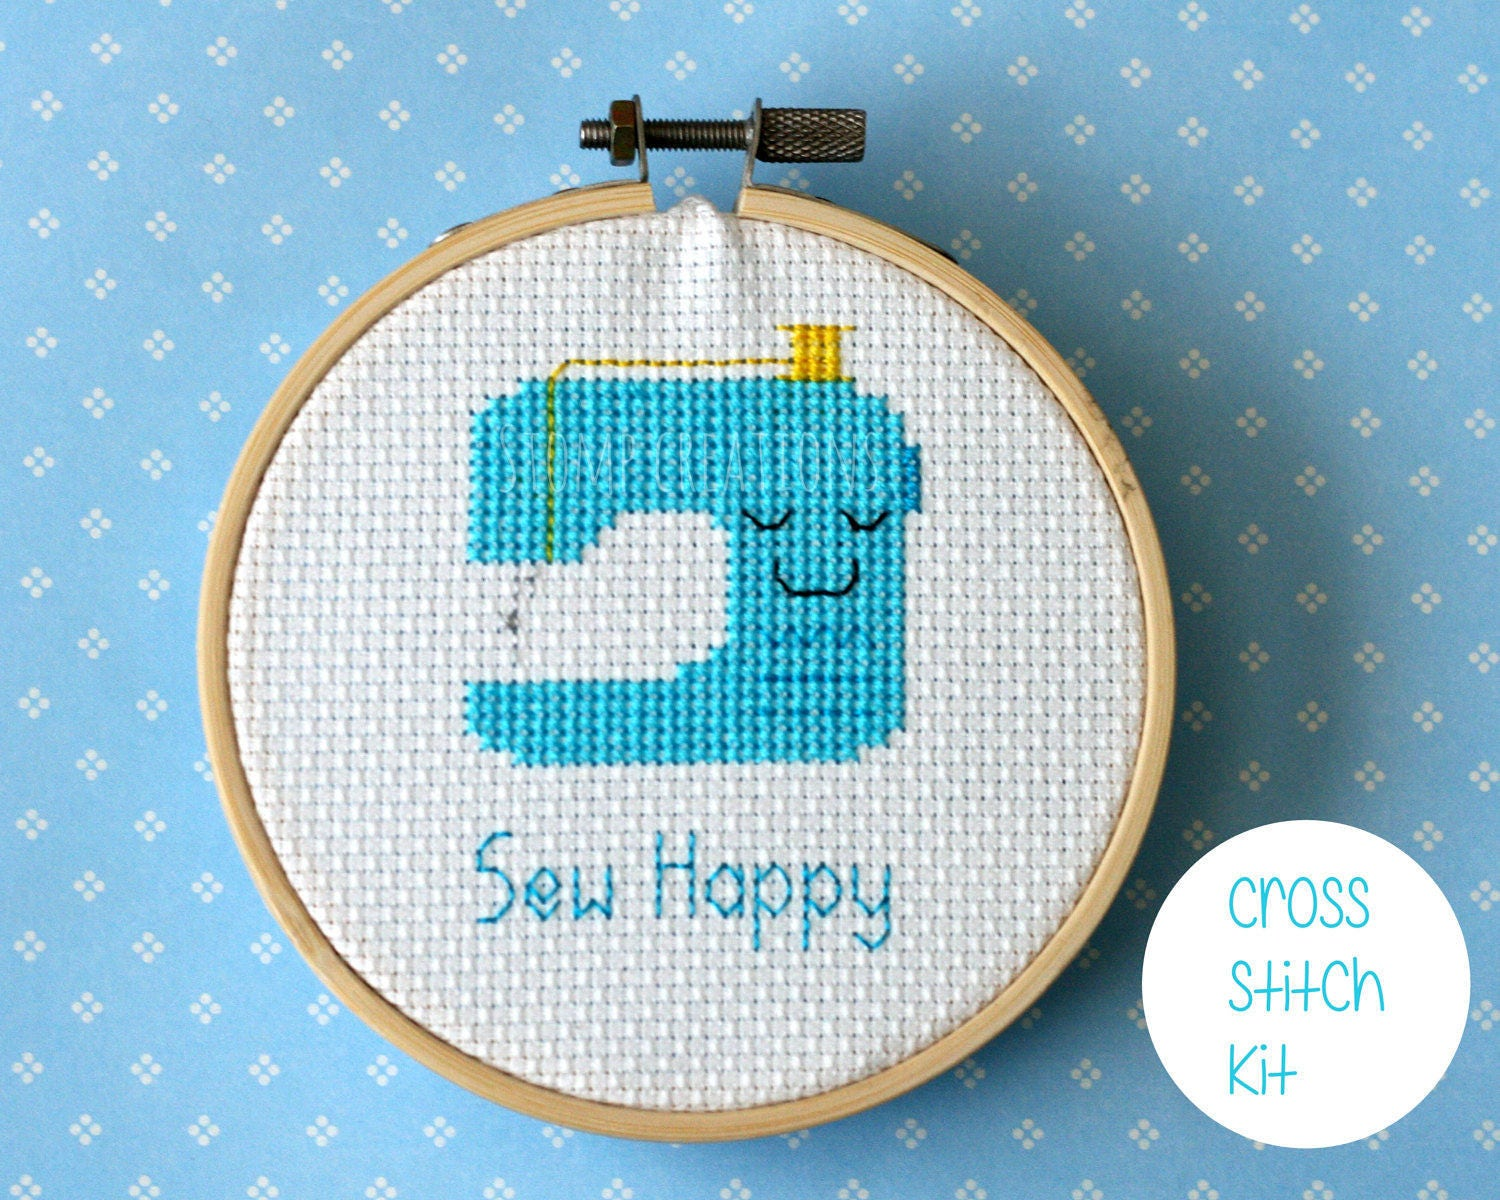 Sewing machine cross stitch kit sew happy cute